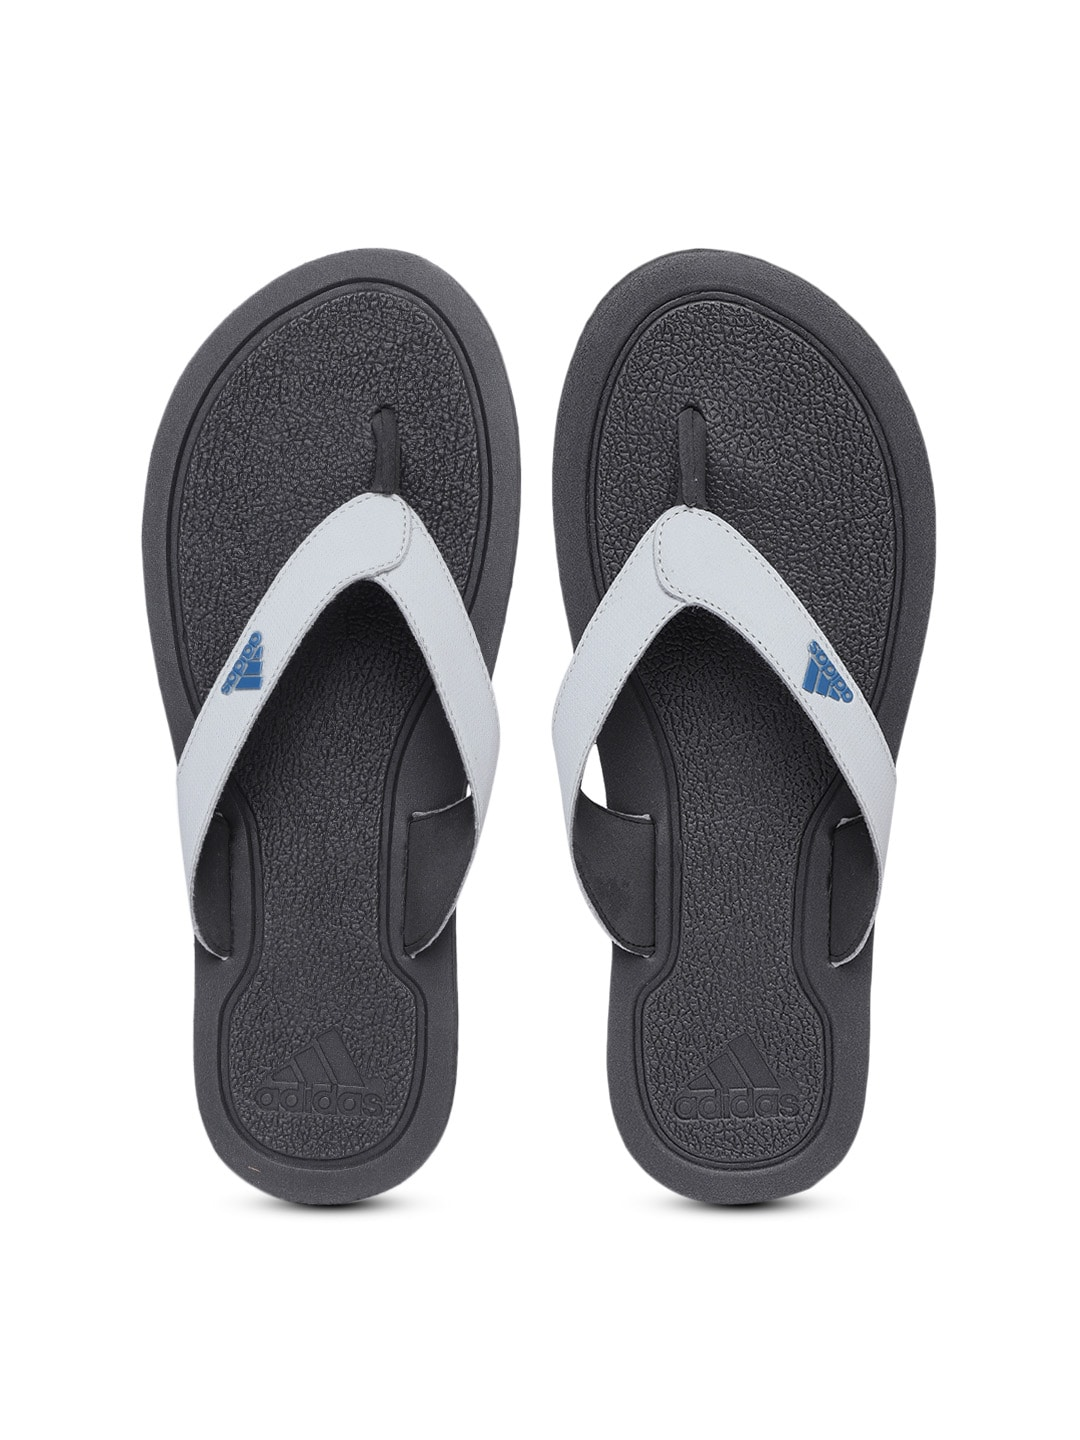 Adidas Slippers - Buy Adidas Slipper   Flip Flops Online India 35ebea0e7